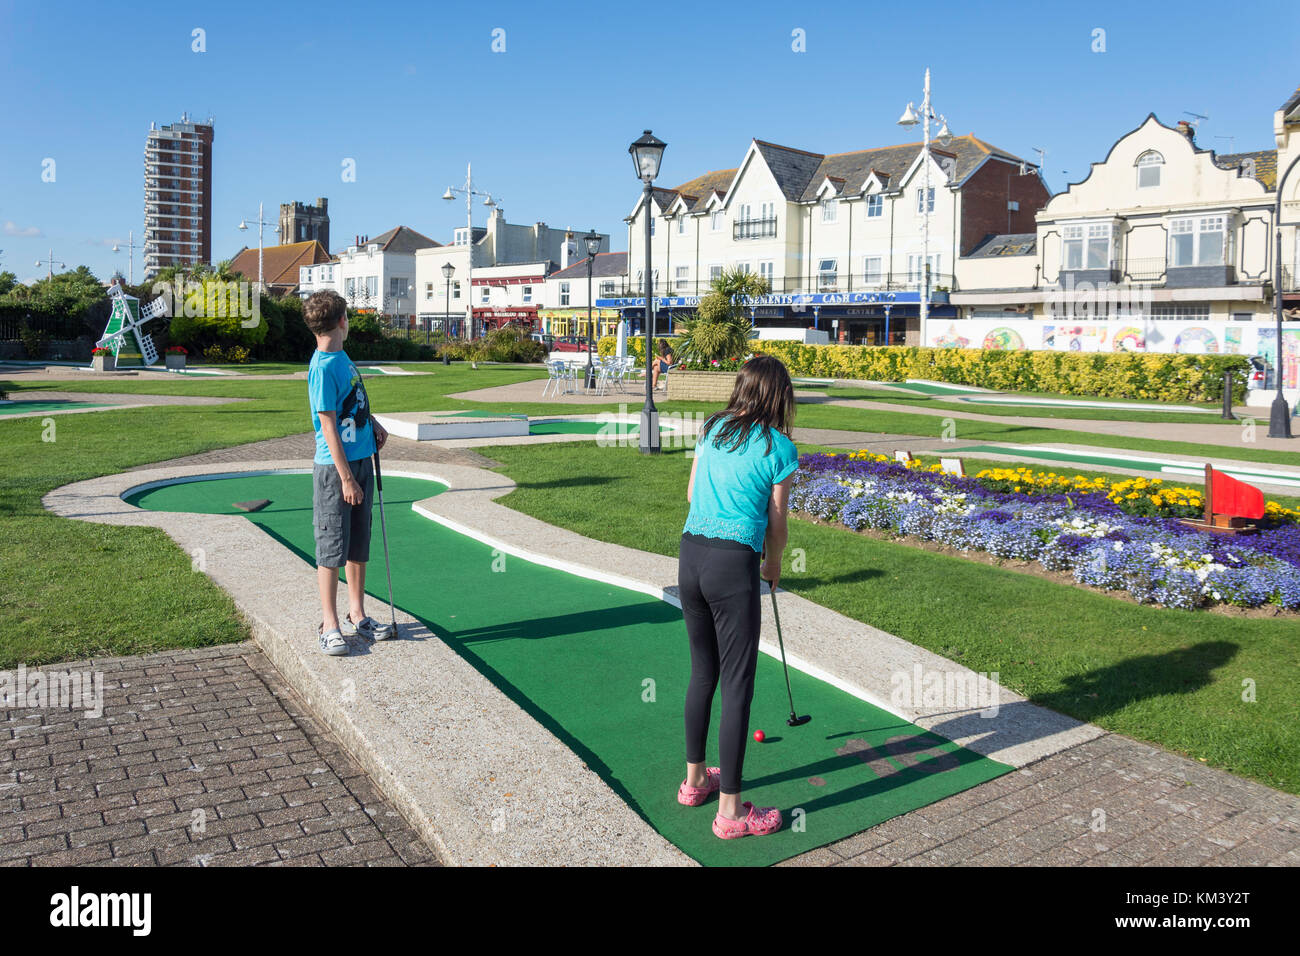 Bognor Regis Crazy Golf, The Esplanade, Bognor Regis, West Sussex, England, United Kingdom - Stock Image